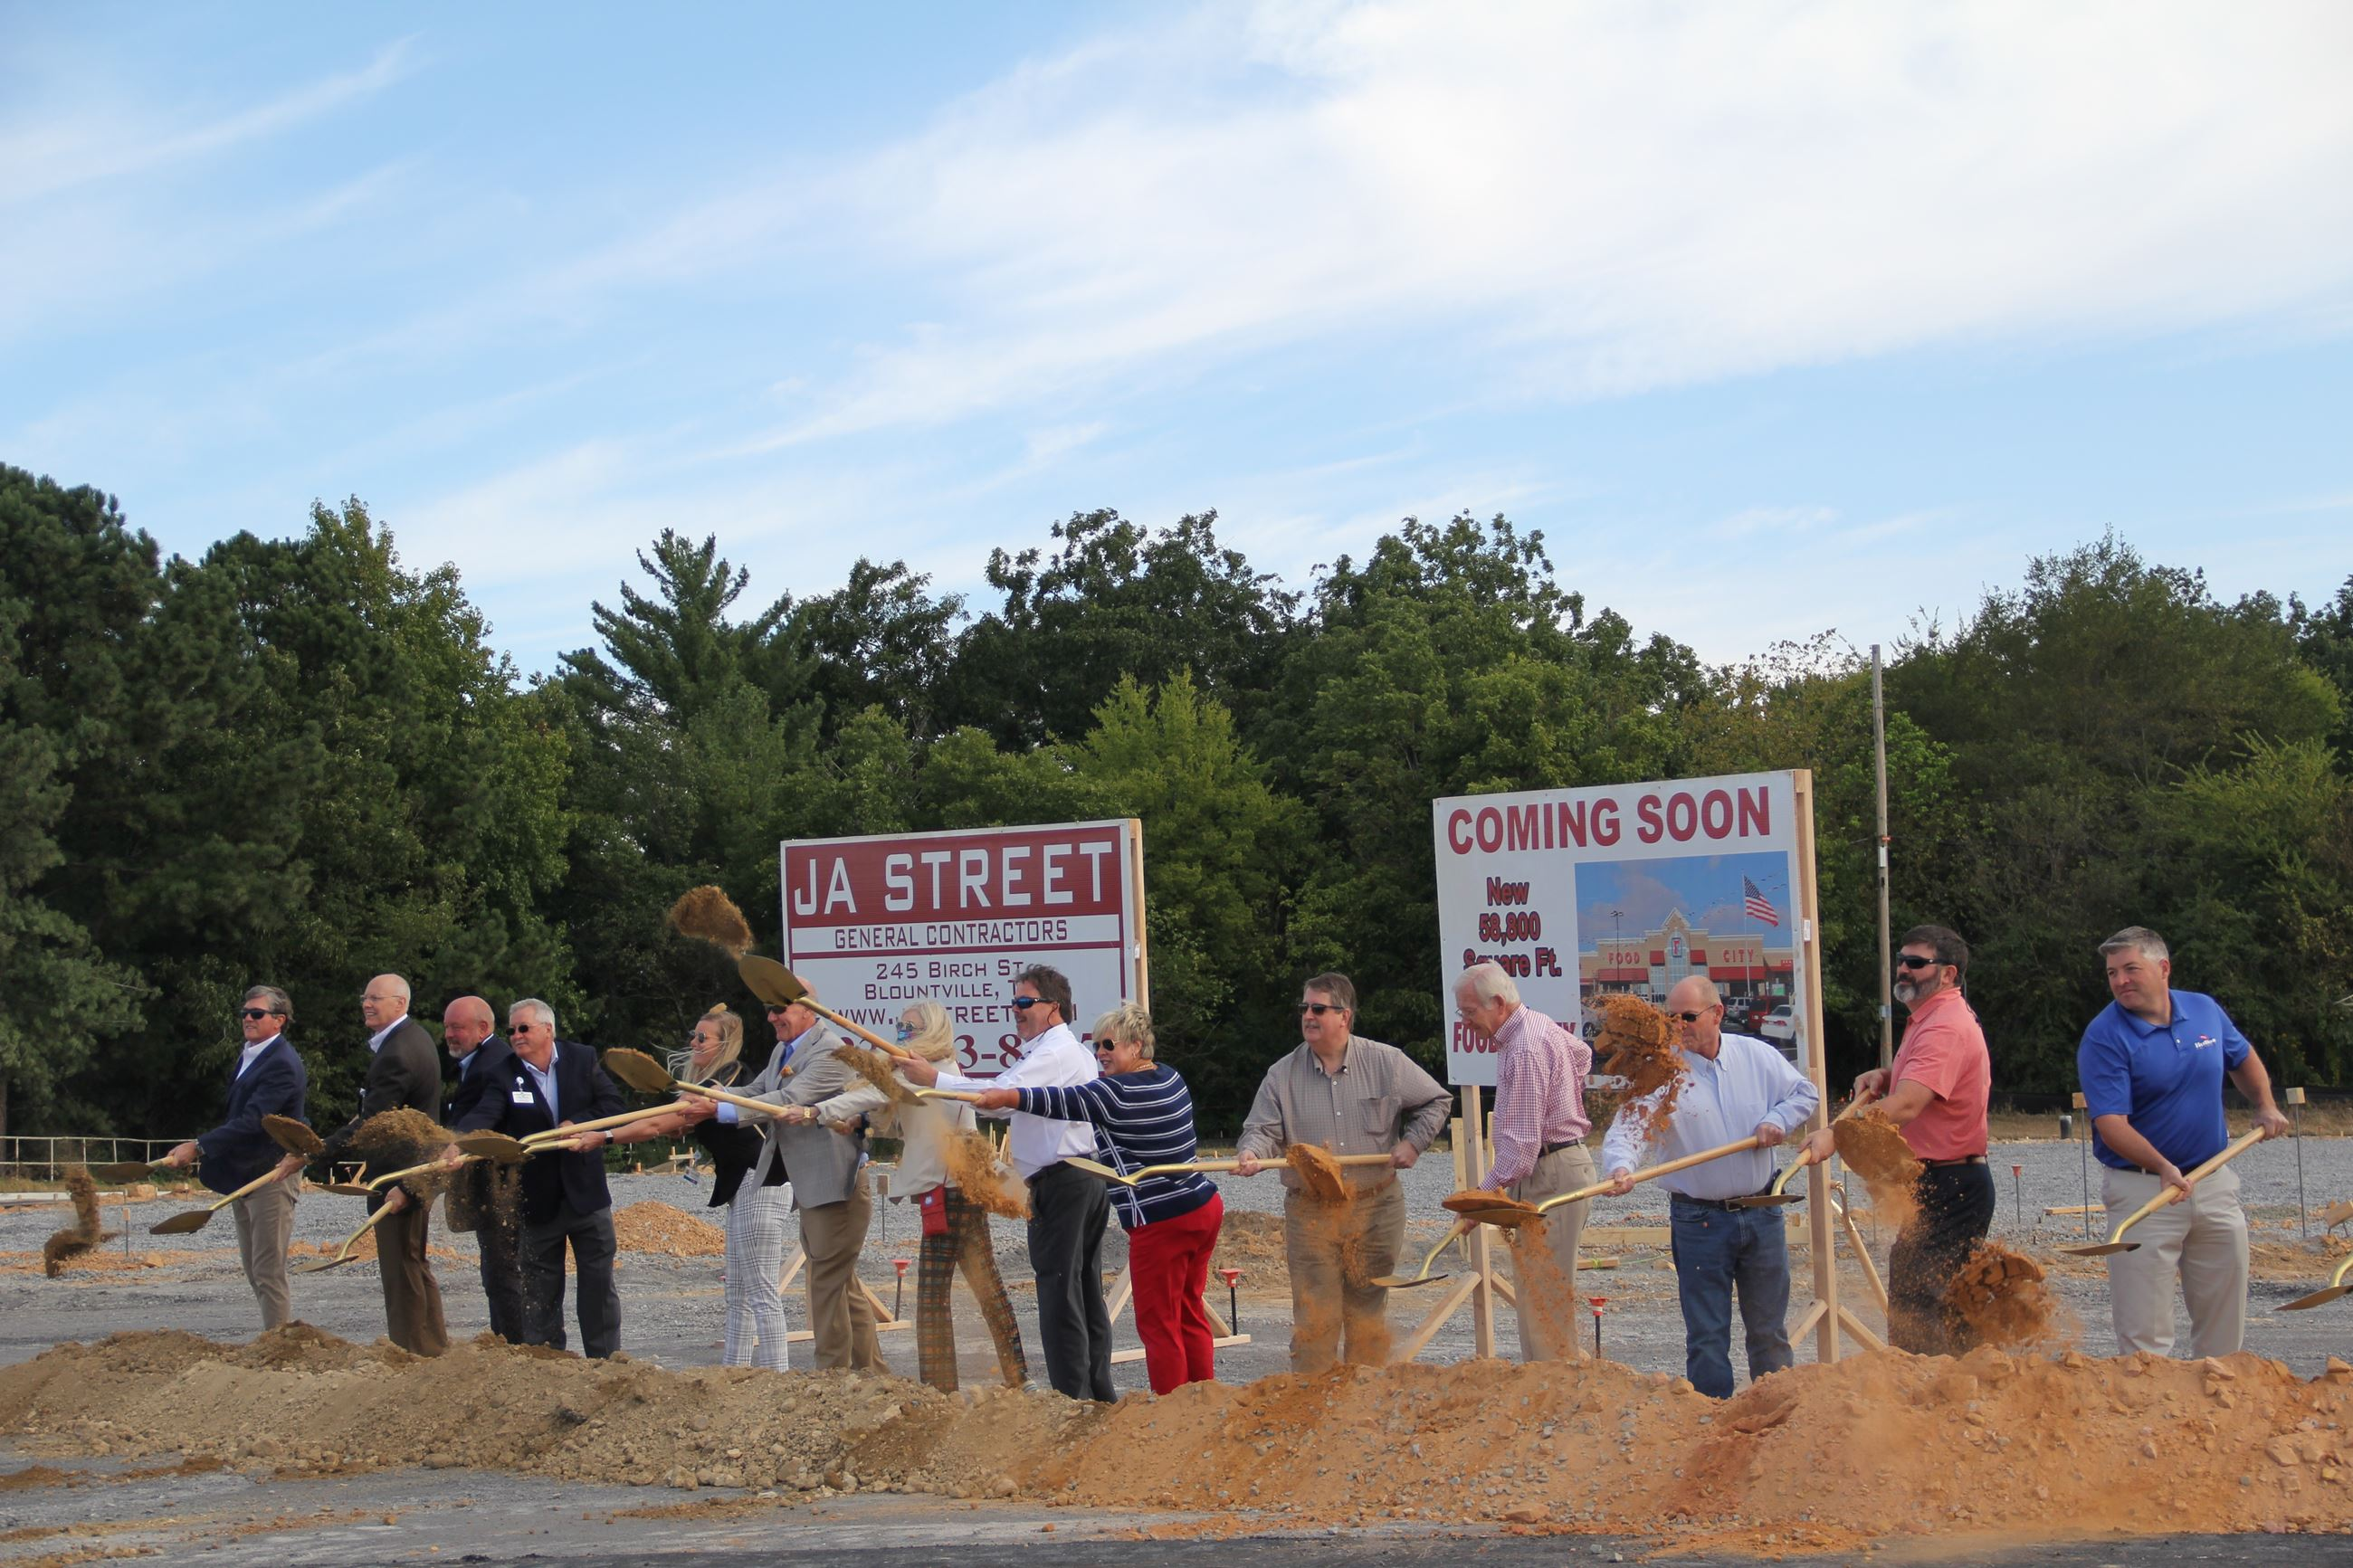 City of Albertville Officials Breaking Ground on New Development